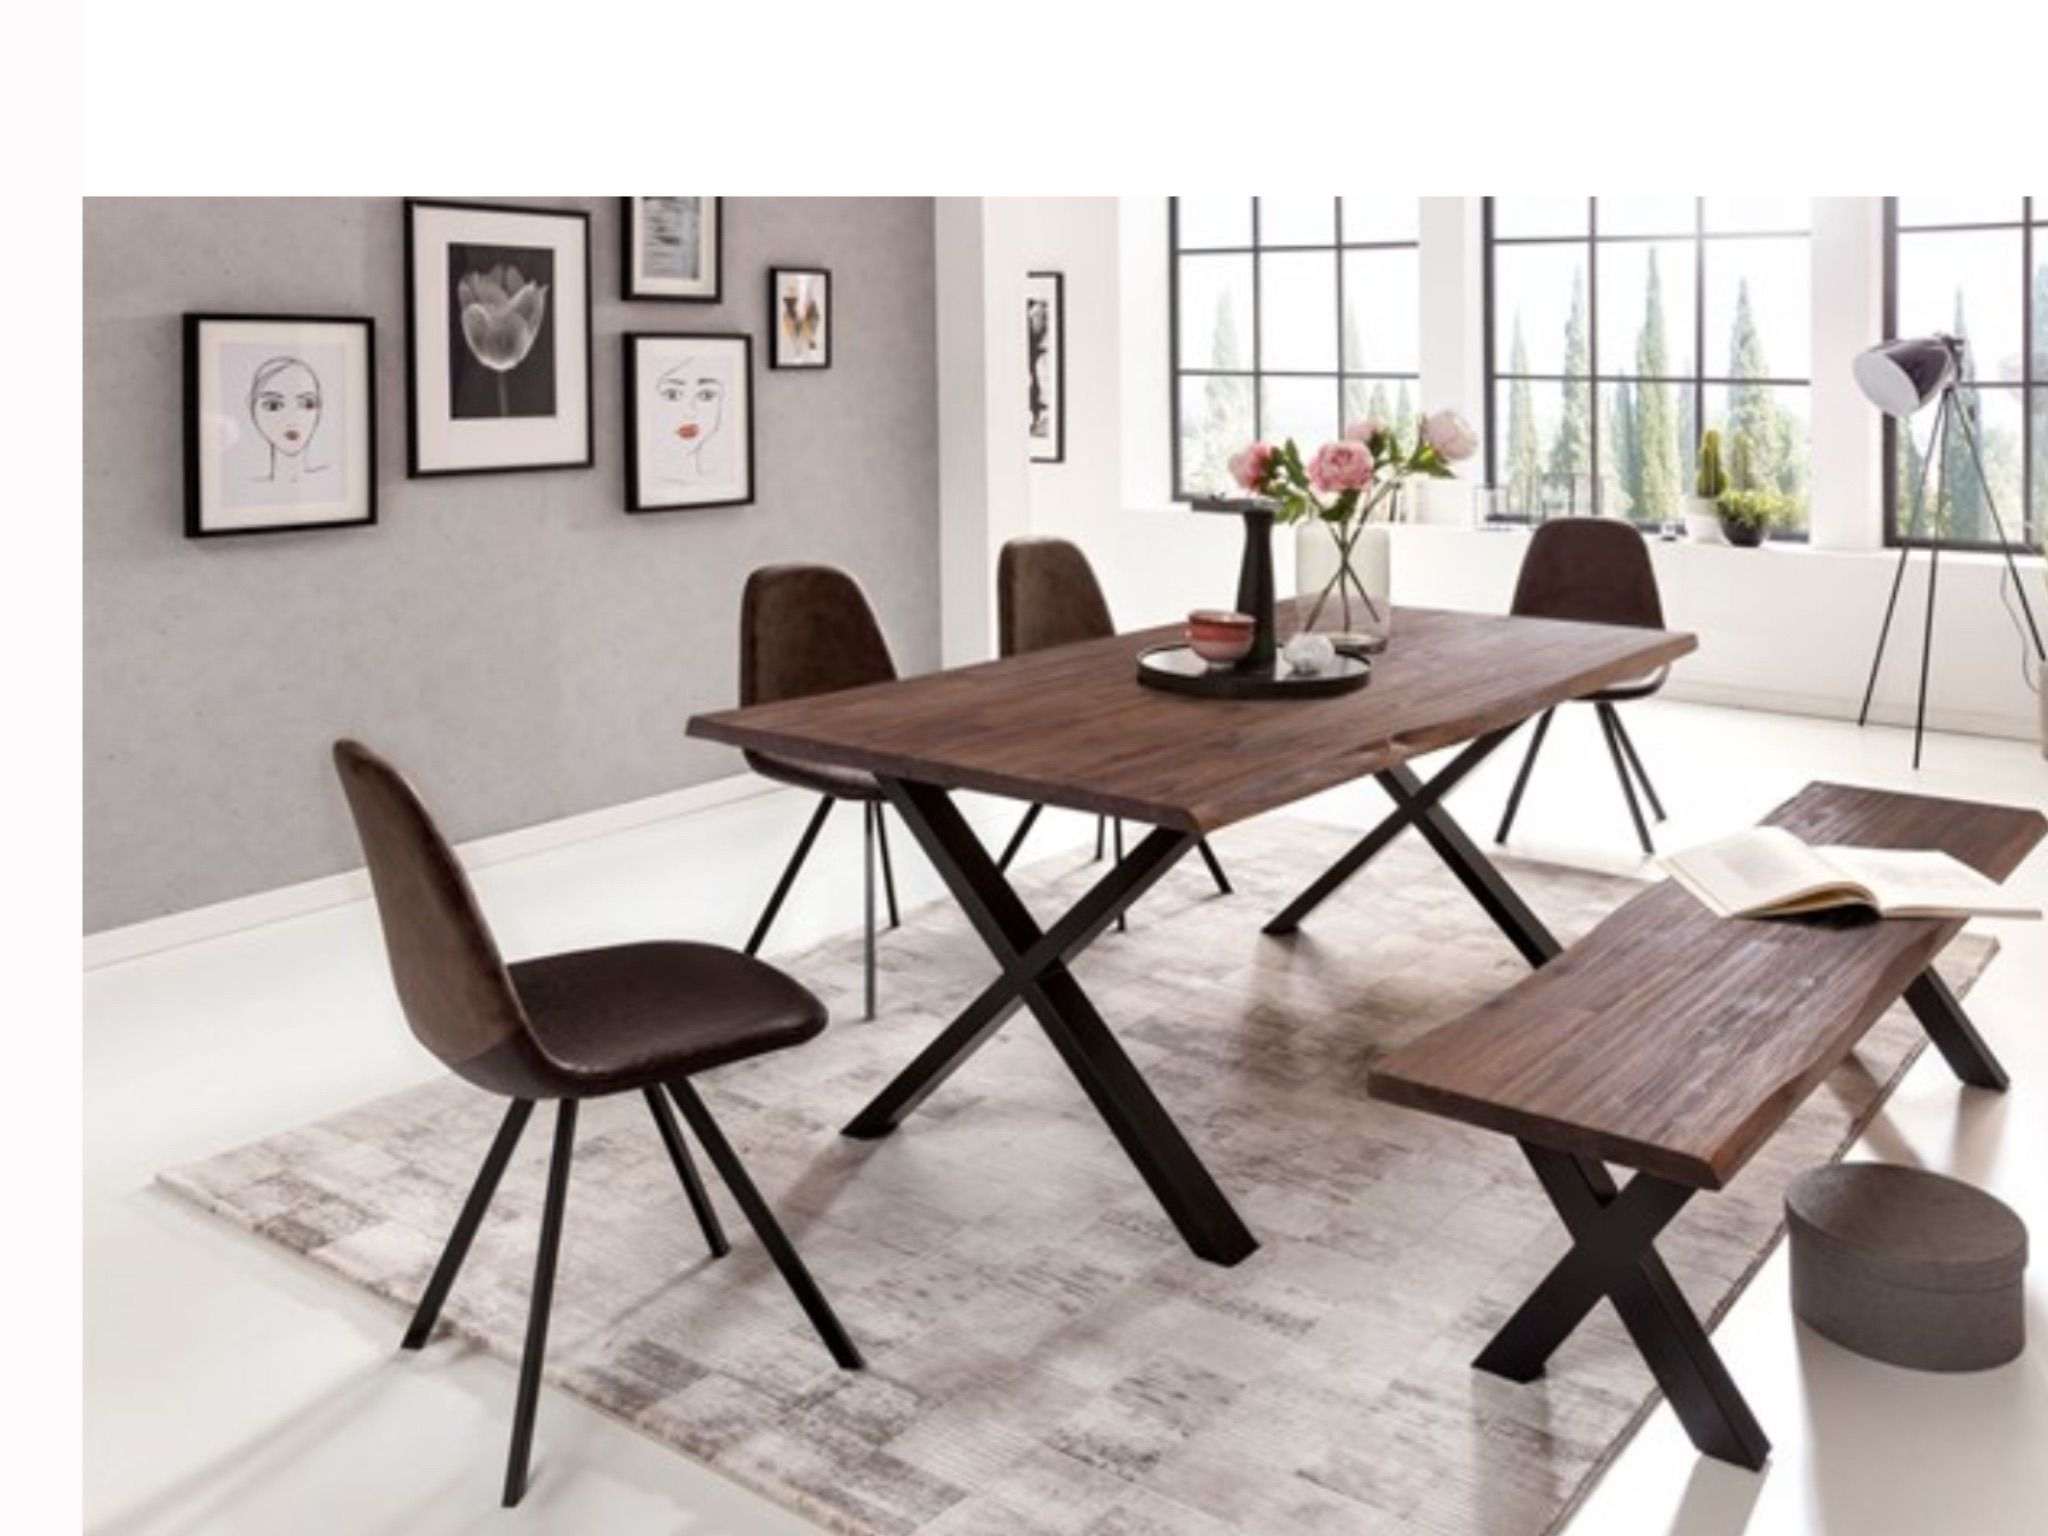 Epingle Par Hoarau Beatrice Sur Idees Deco Table Bois Massif